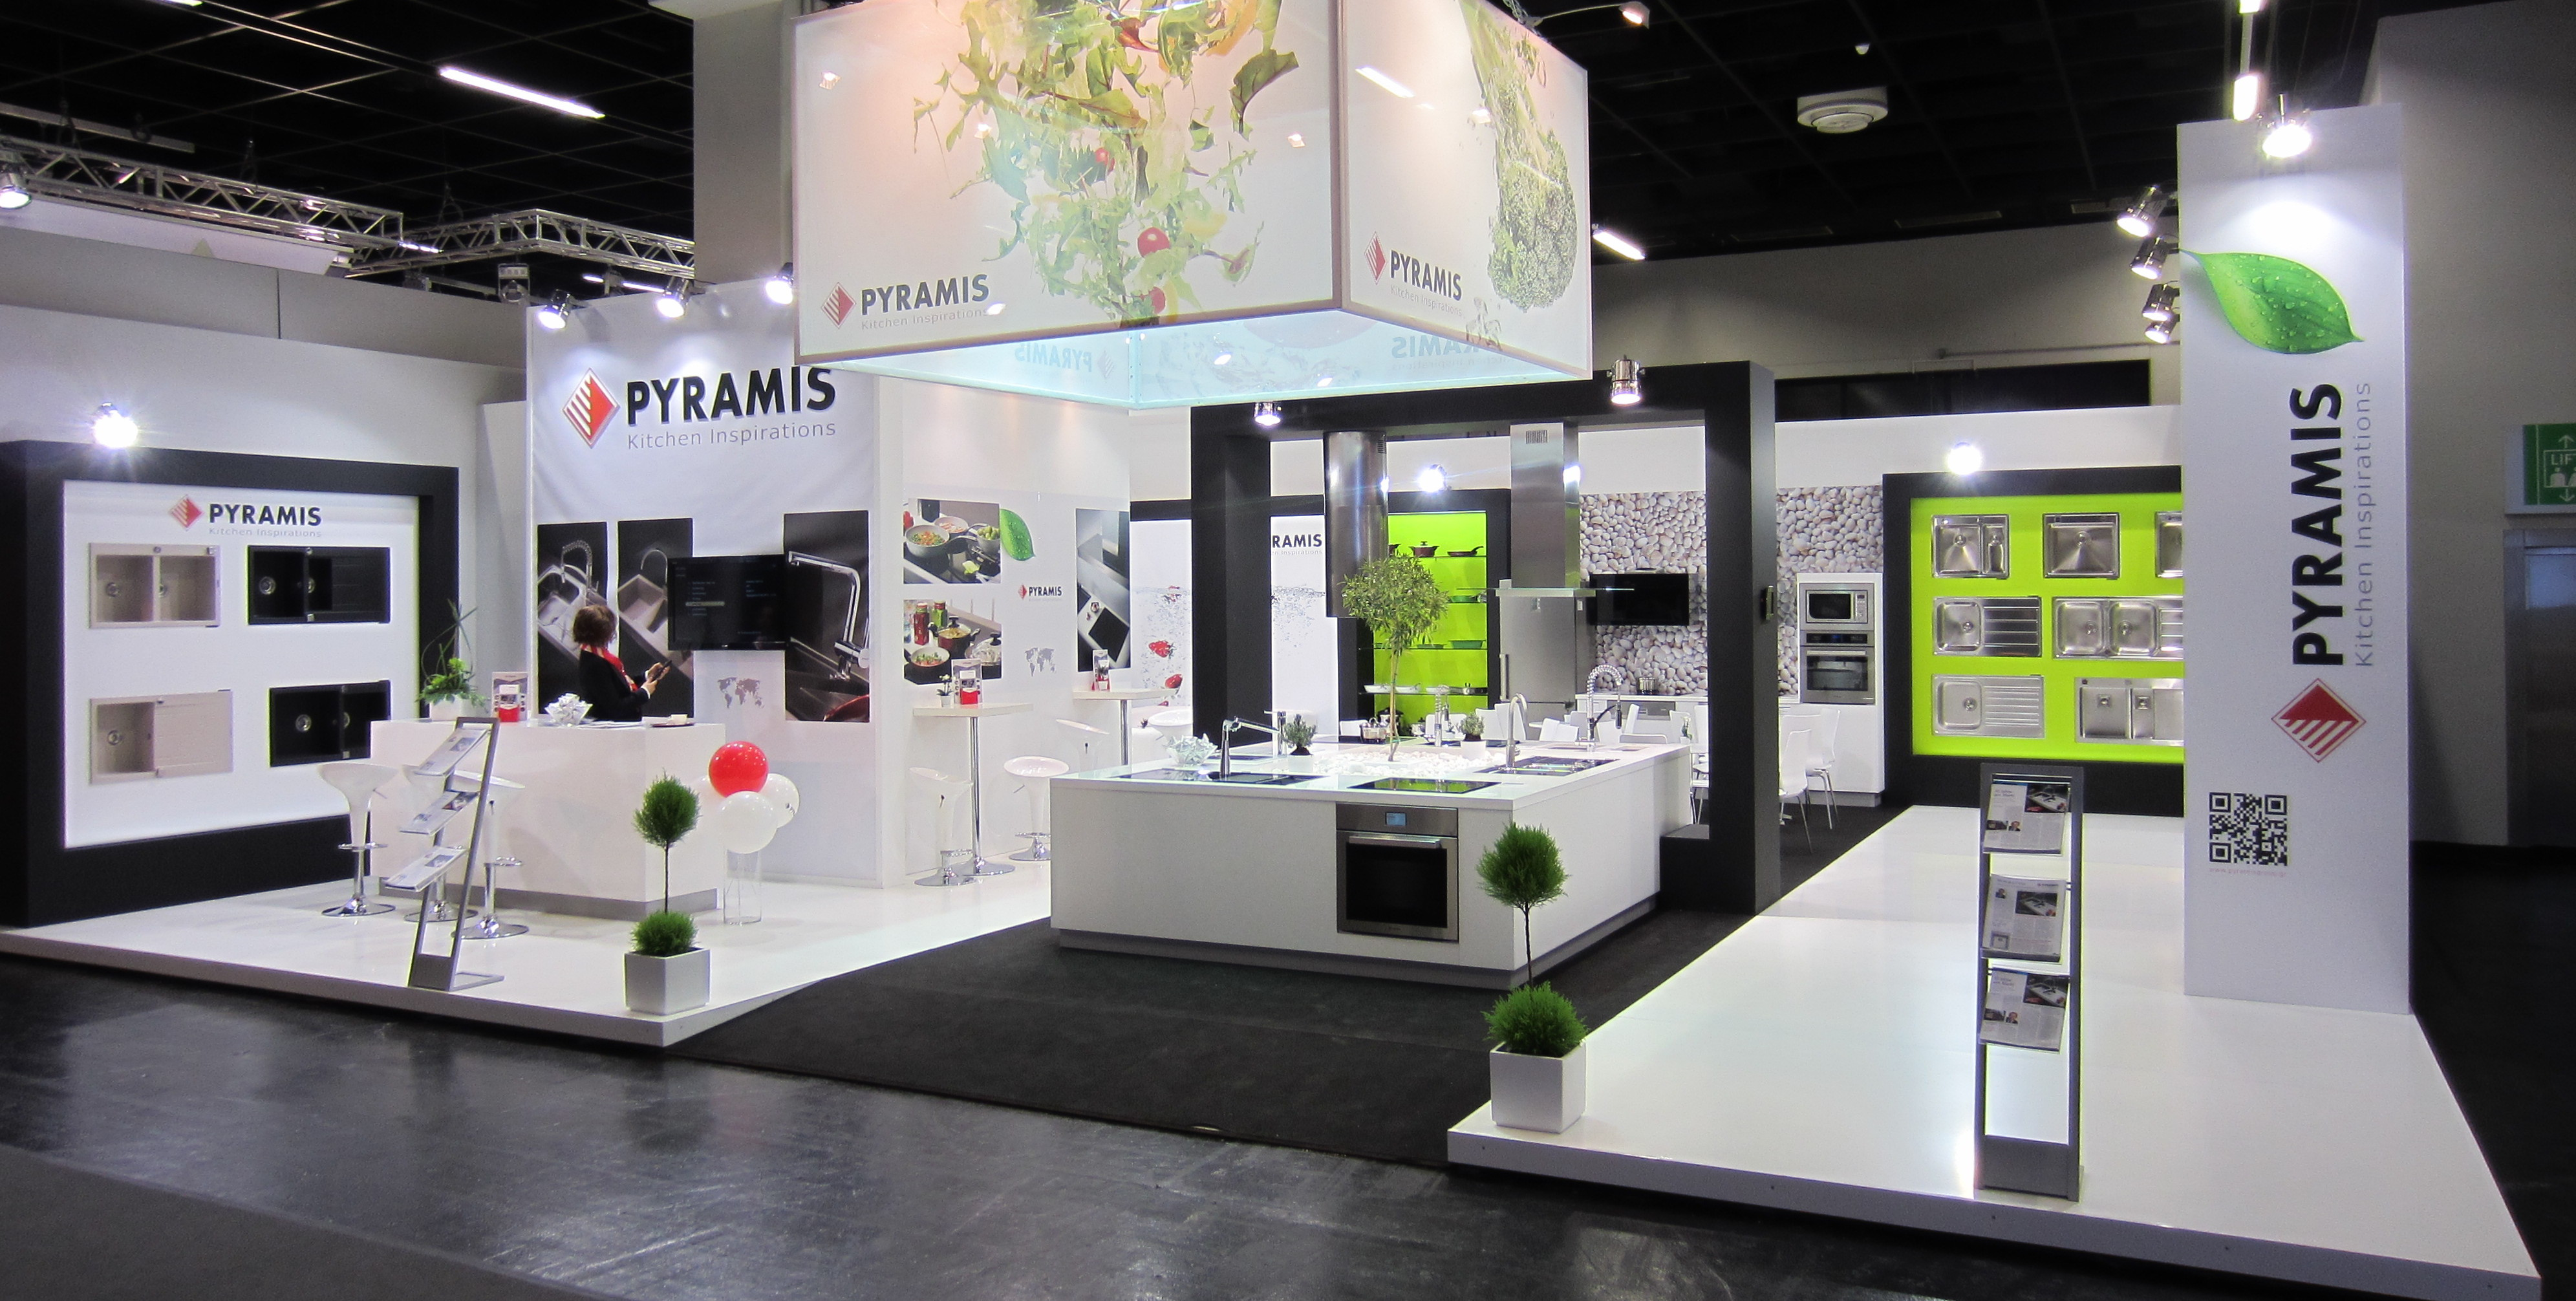 Pyramis Metallourgia A E Participation At Living Kitchen 2013 Exhibition In Cologne Germany